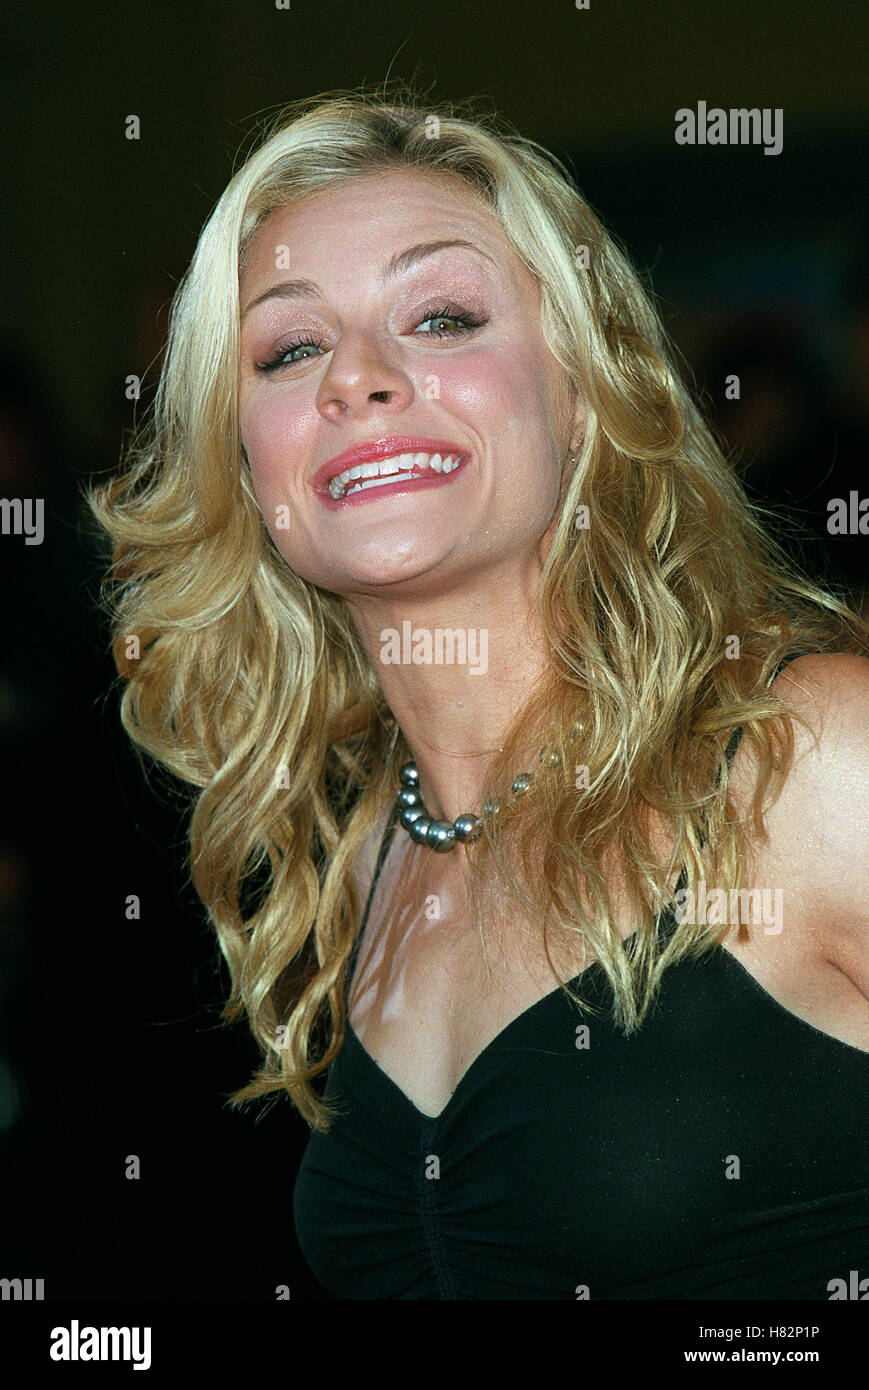 jessica cauffiel wikipediajessica cauffiel instagram, jessica cauffiel, jessica cauffiel net worth, jessica cauffiel movies, jessica cauffiel legally blonde, jessica cauffiel husband, jessica cauffiel imdb, jessica cauffiel 2019, jessica cauffiel height, jessica cauffiel age, jessica cauffiel eyes, jessica cauffiel now, jessica cauffiel peliculas, jessica cauffiel married, jessica cauffiel filmes, jessica cauffiel twitter, jessica cauffiel wiki, jessica cauffiel wikipedia, jessica cauffiel singing, jessica cauffiel daughter